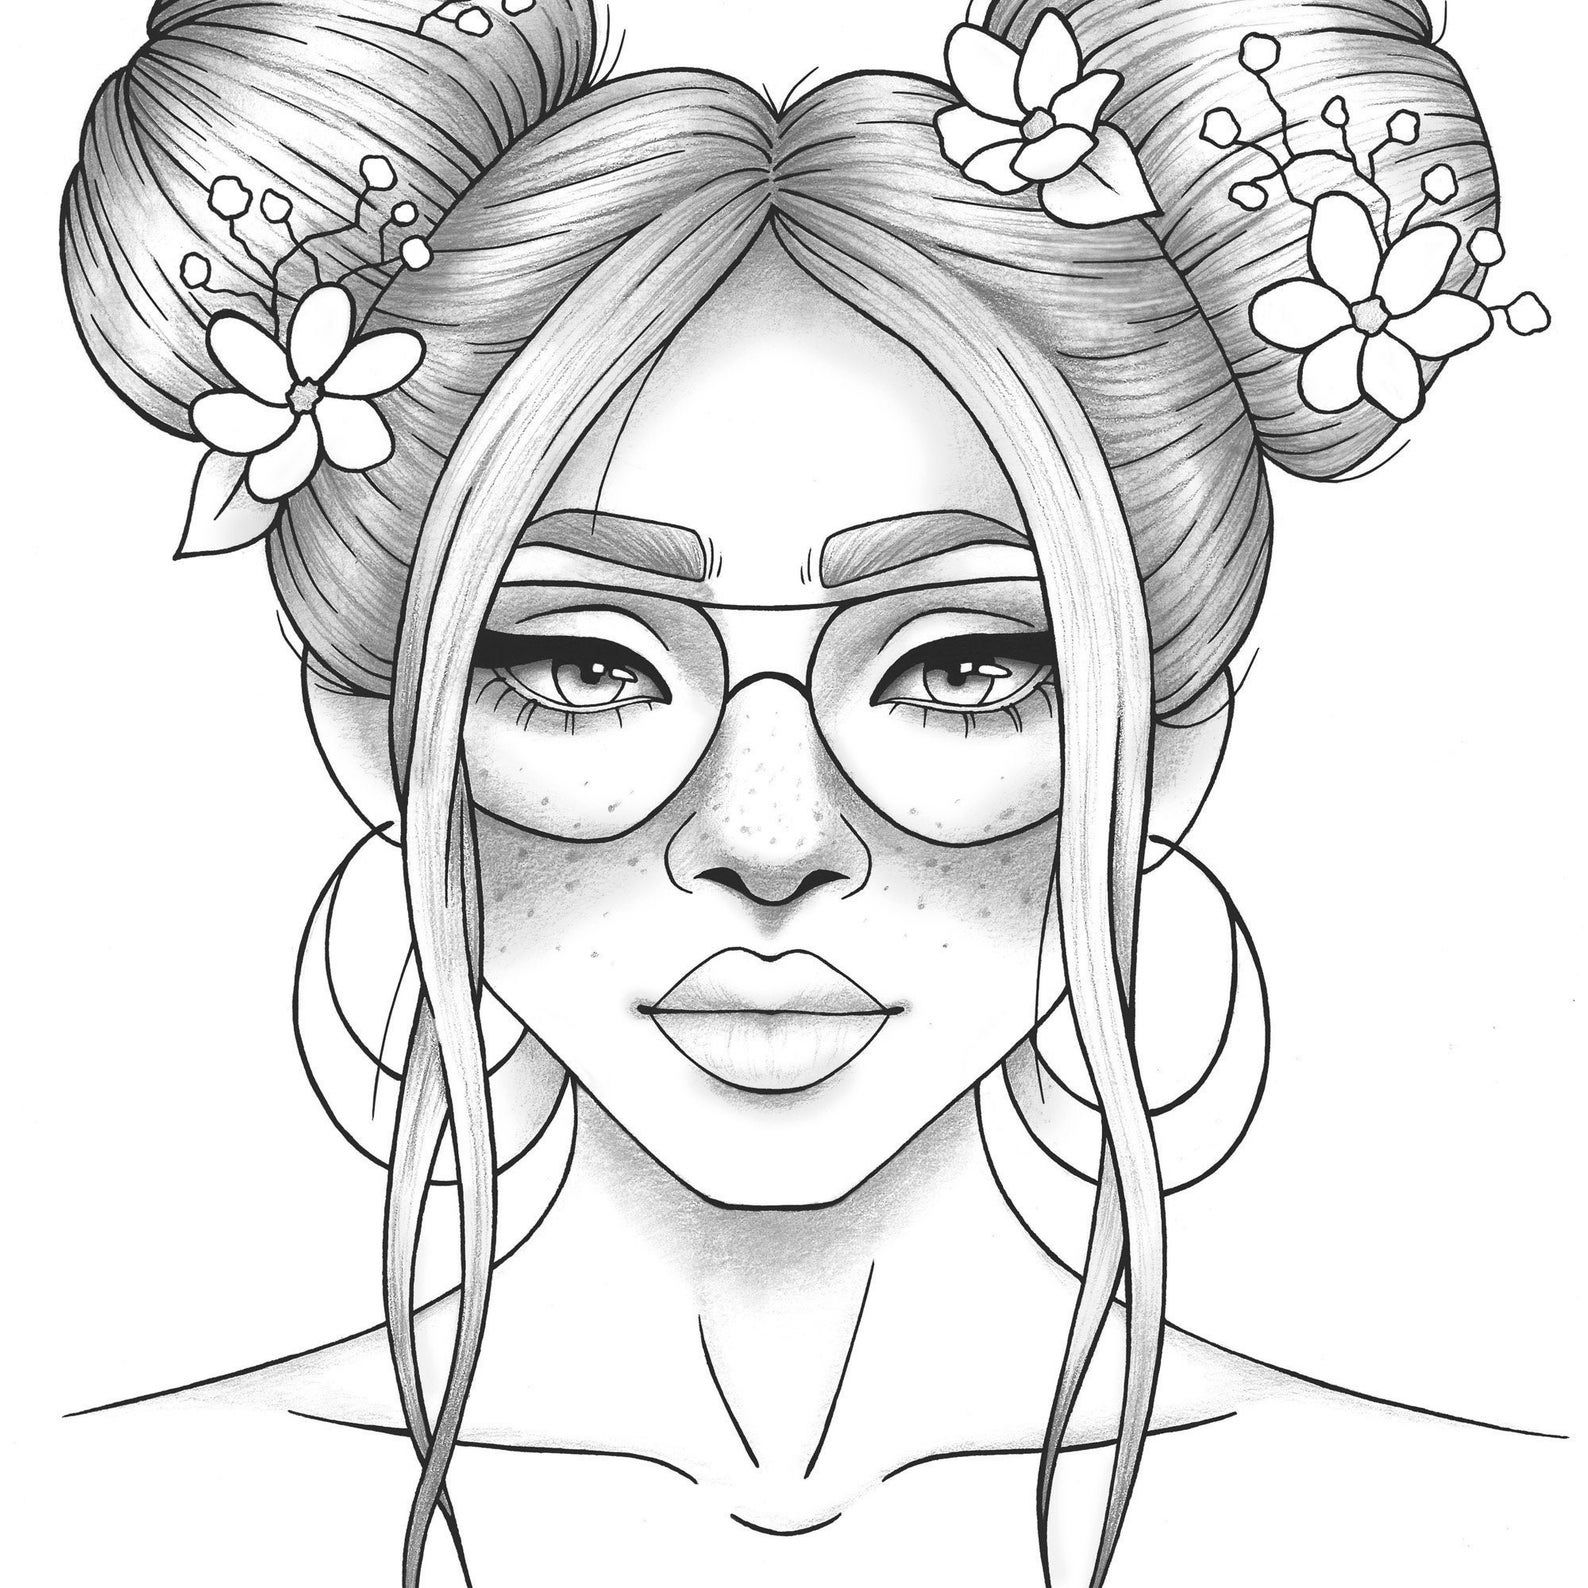 Printable Coloring Page Girl Portrait And Clothes Colouring Etsy People Coloring Pages Outline Drawings Coloring Pages For Girls